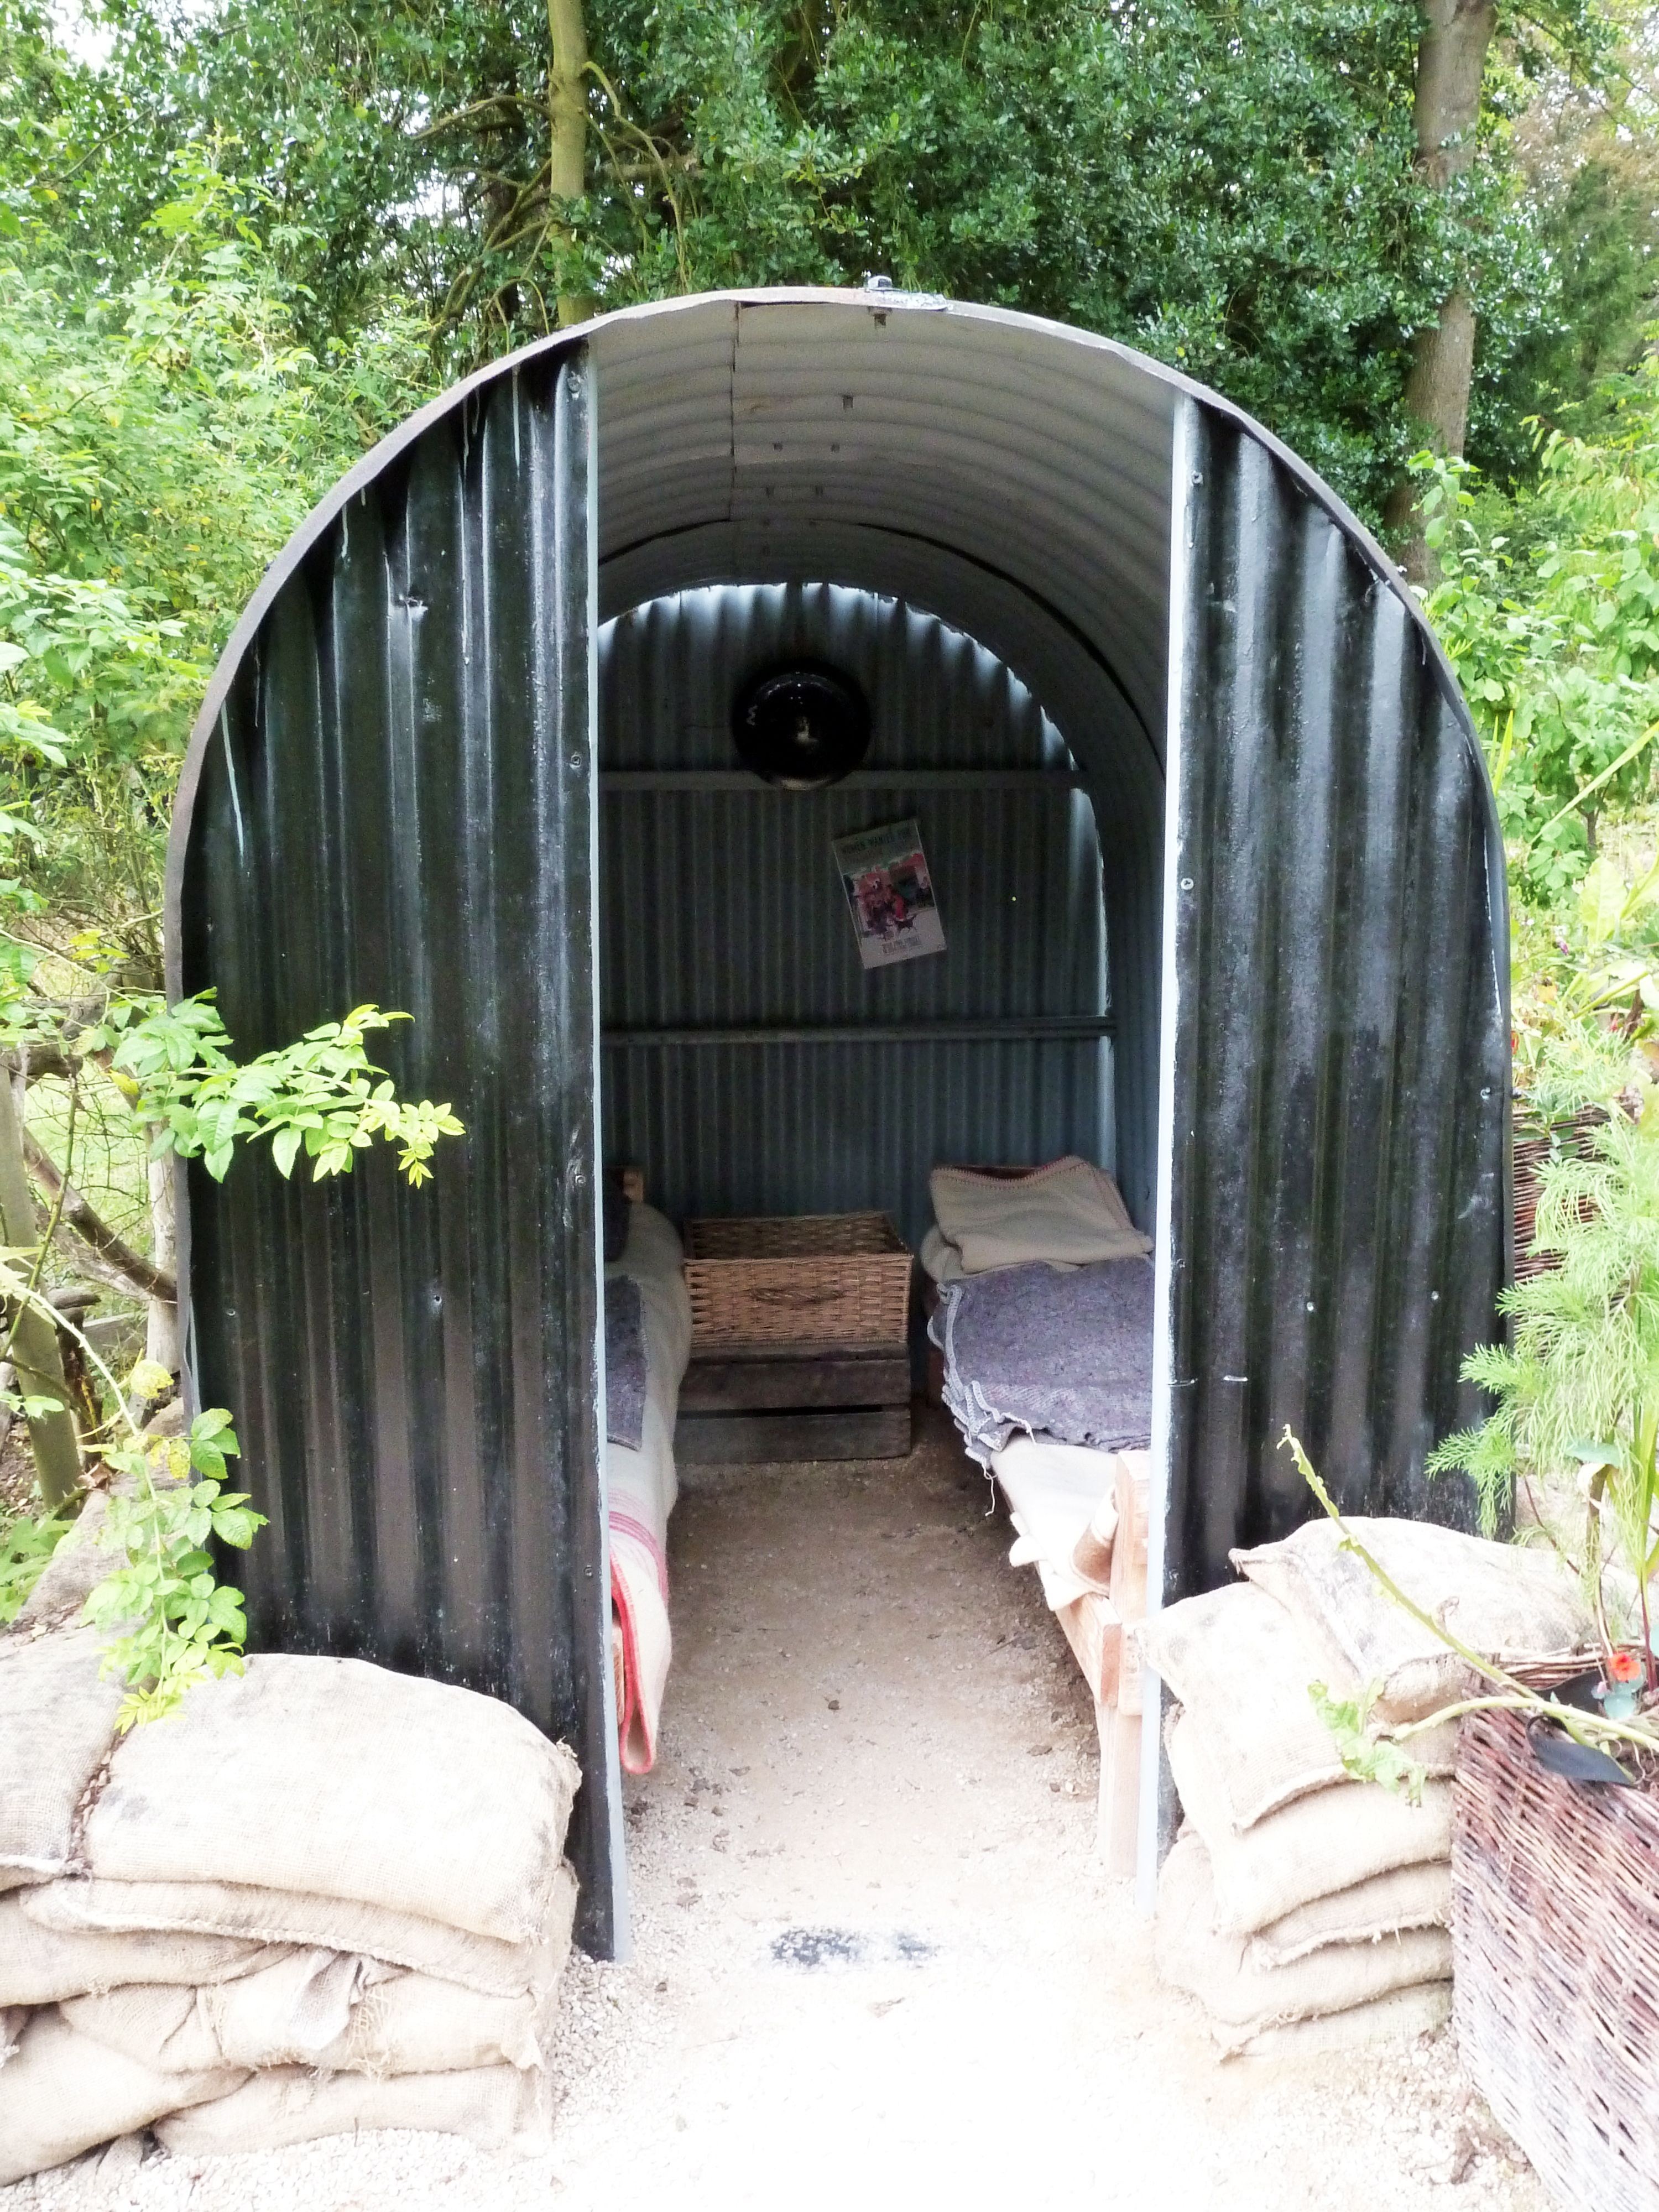 Anderson shelter in Chatsworth Castle Park, UK. Air-raid shelter made in  WWII in UK. 6 people can live in it. The structure is made to deform.